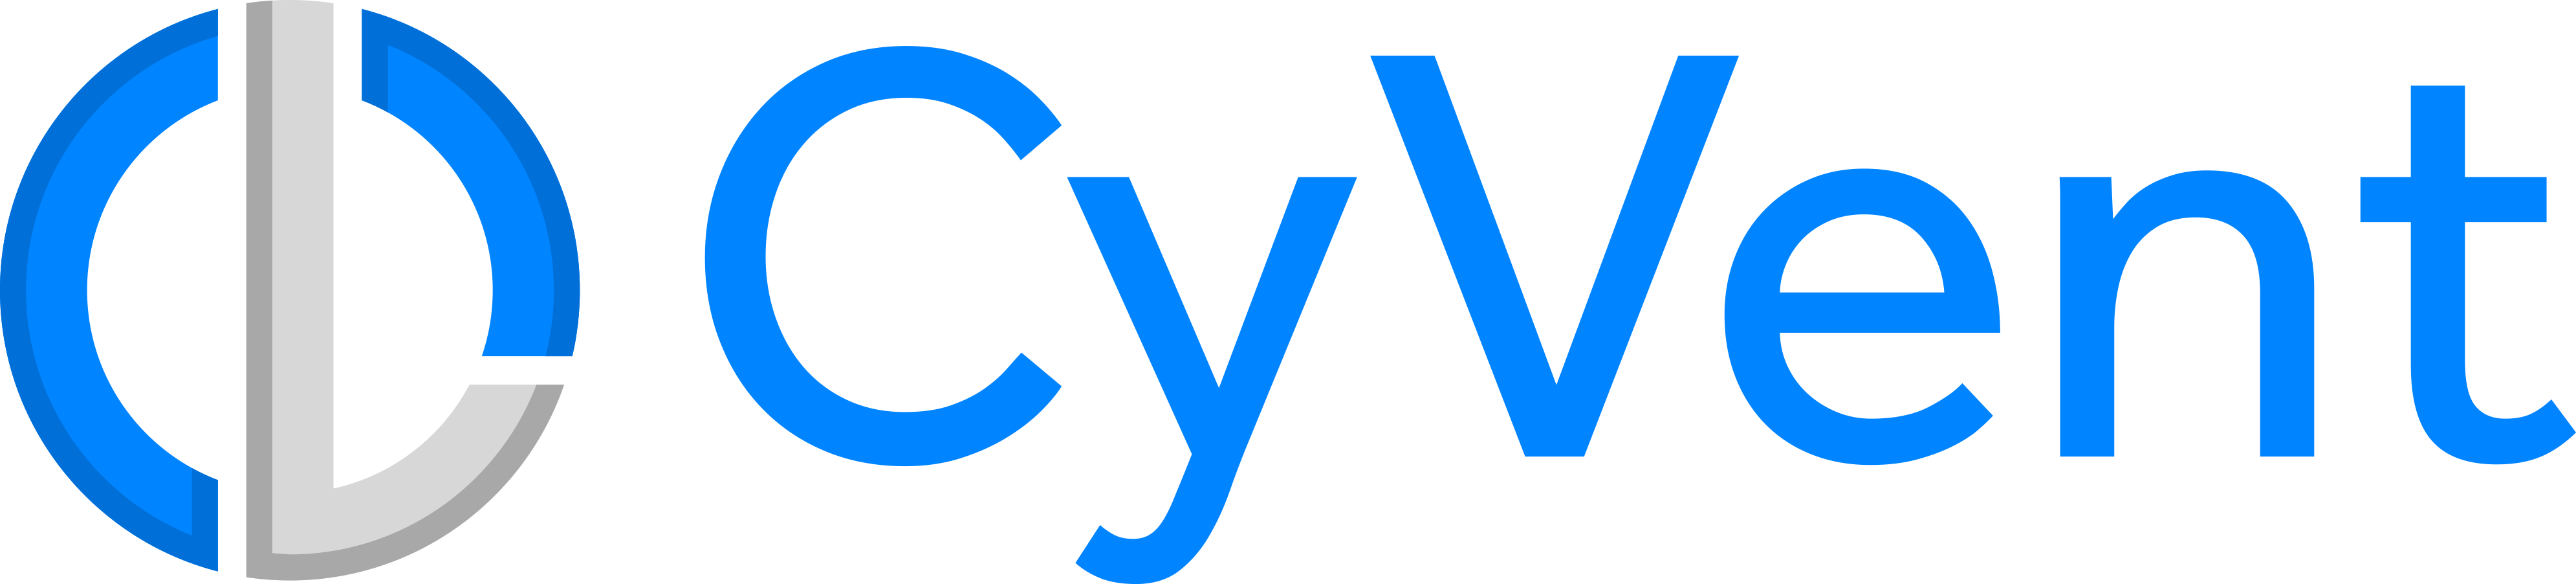 Cyvent Logo 1-line Transparent 136kb